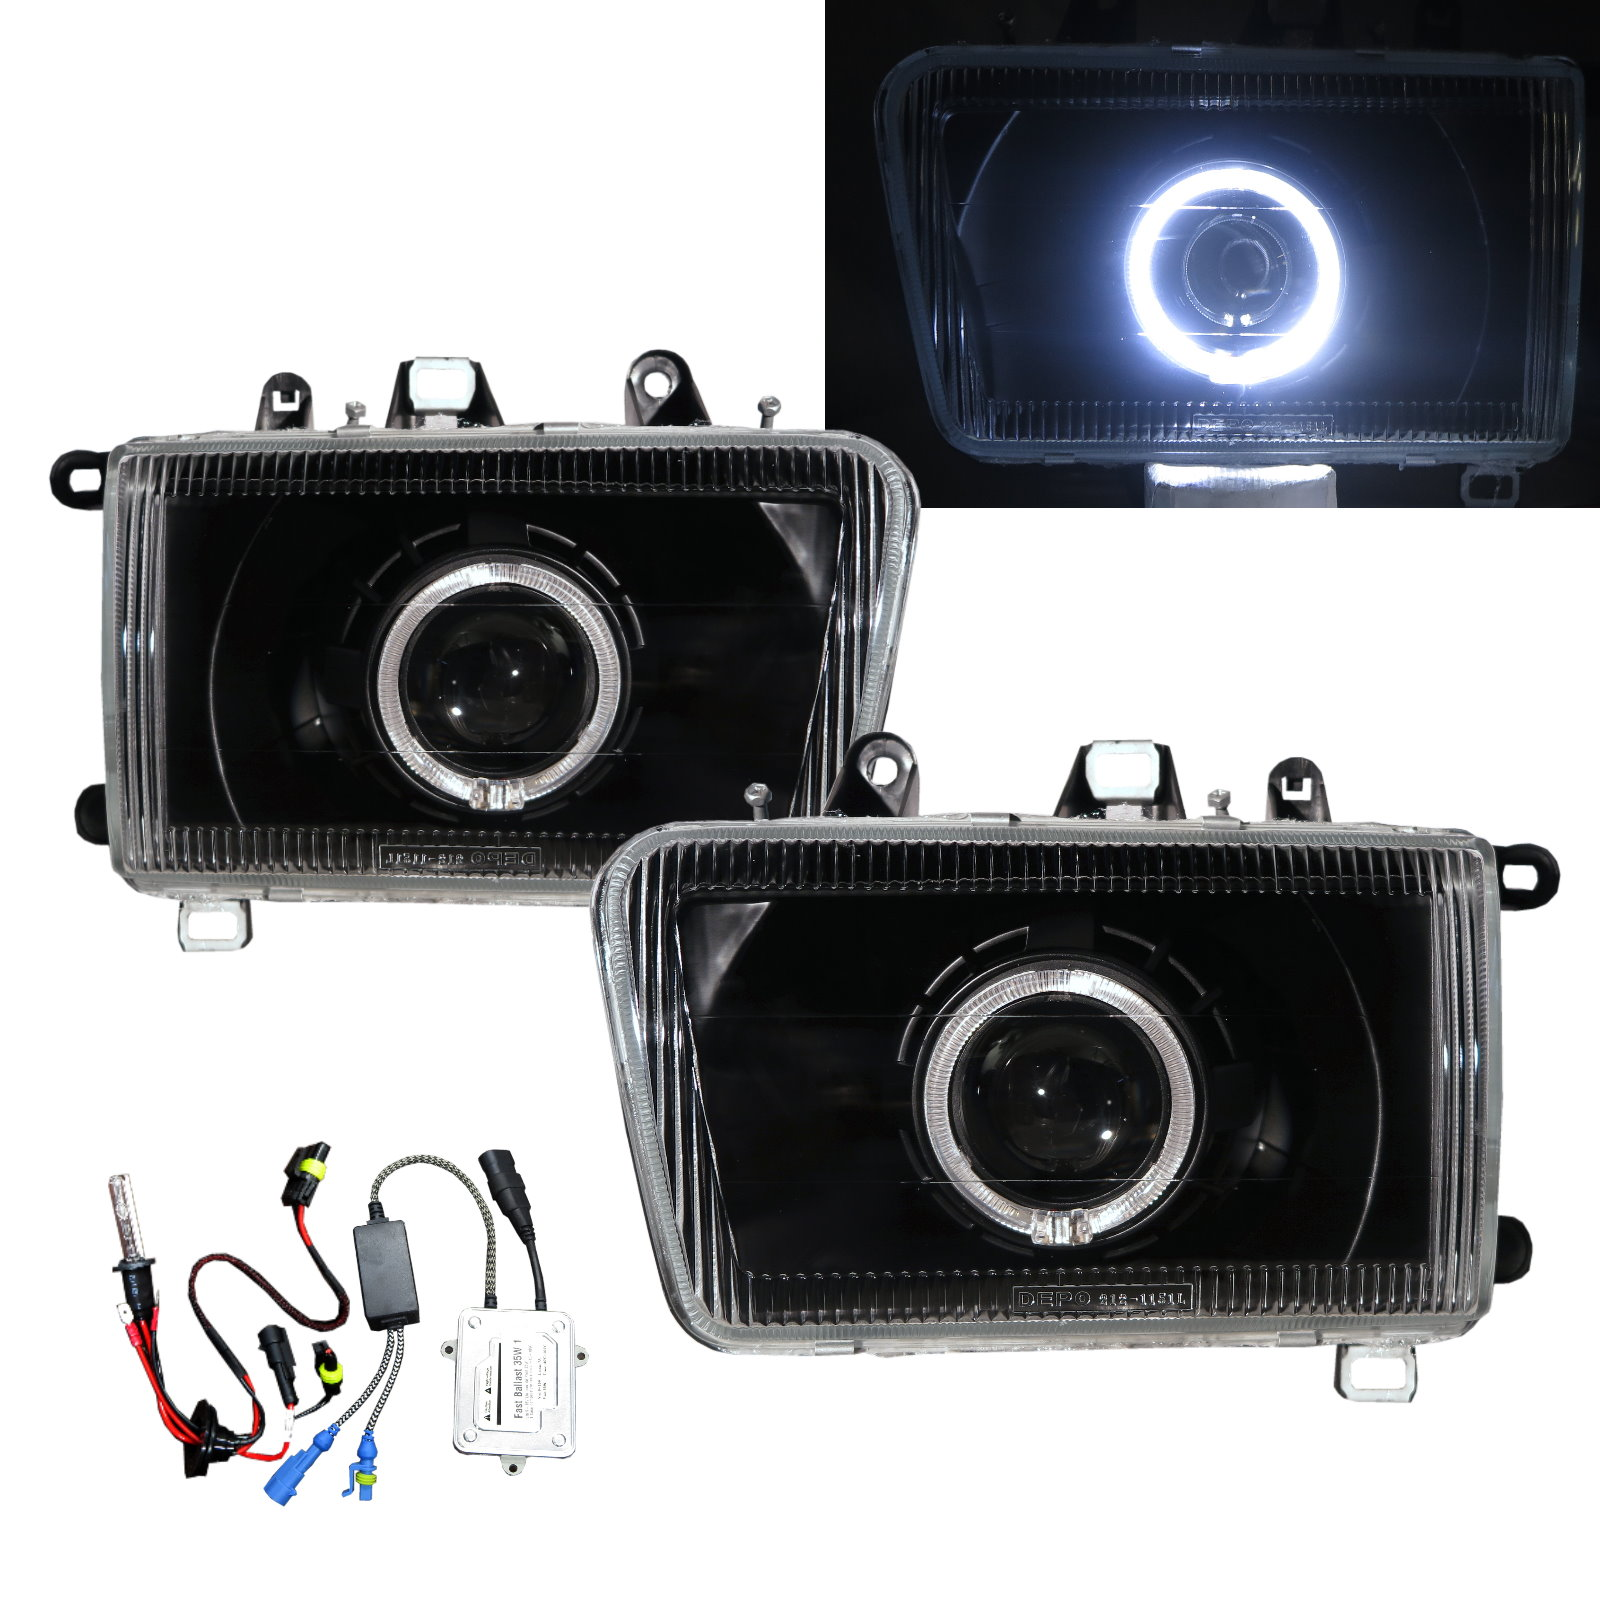 Deer 02-03 SUV 5D Guide LED Angel-Eye Projector Headlight BK for Great Wall LHD